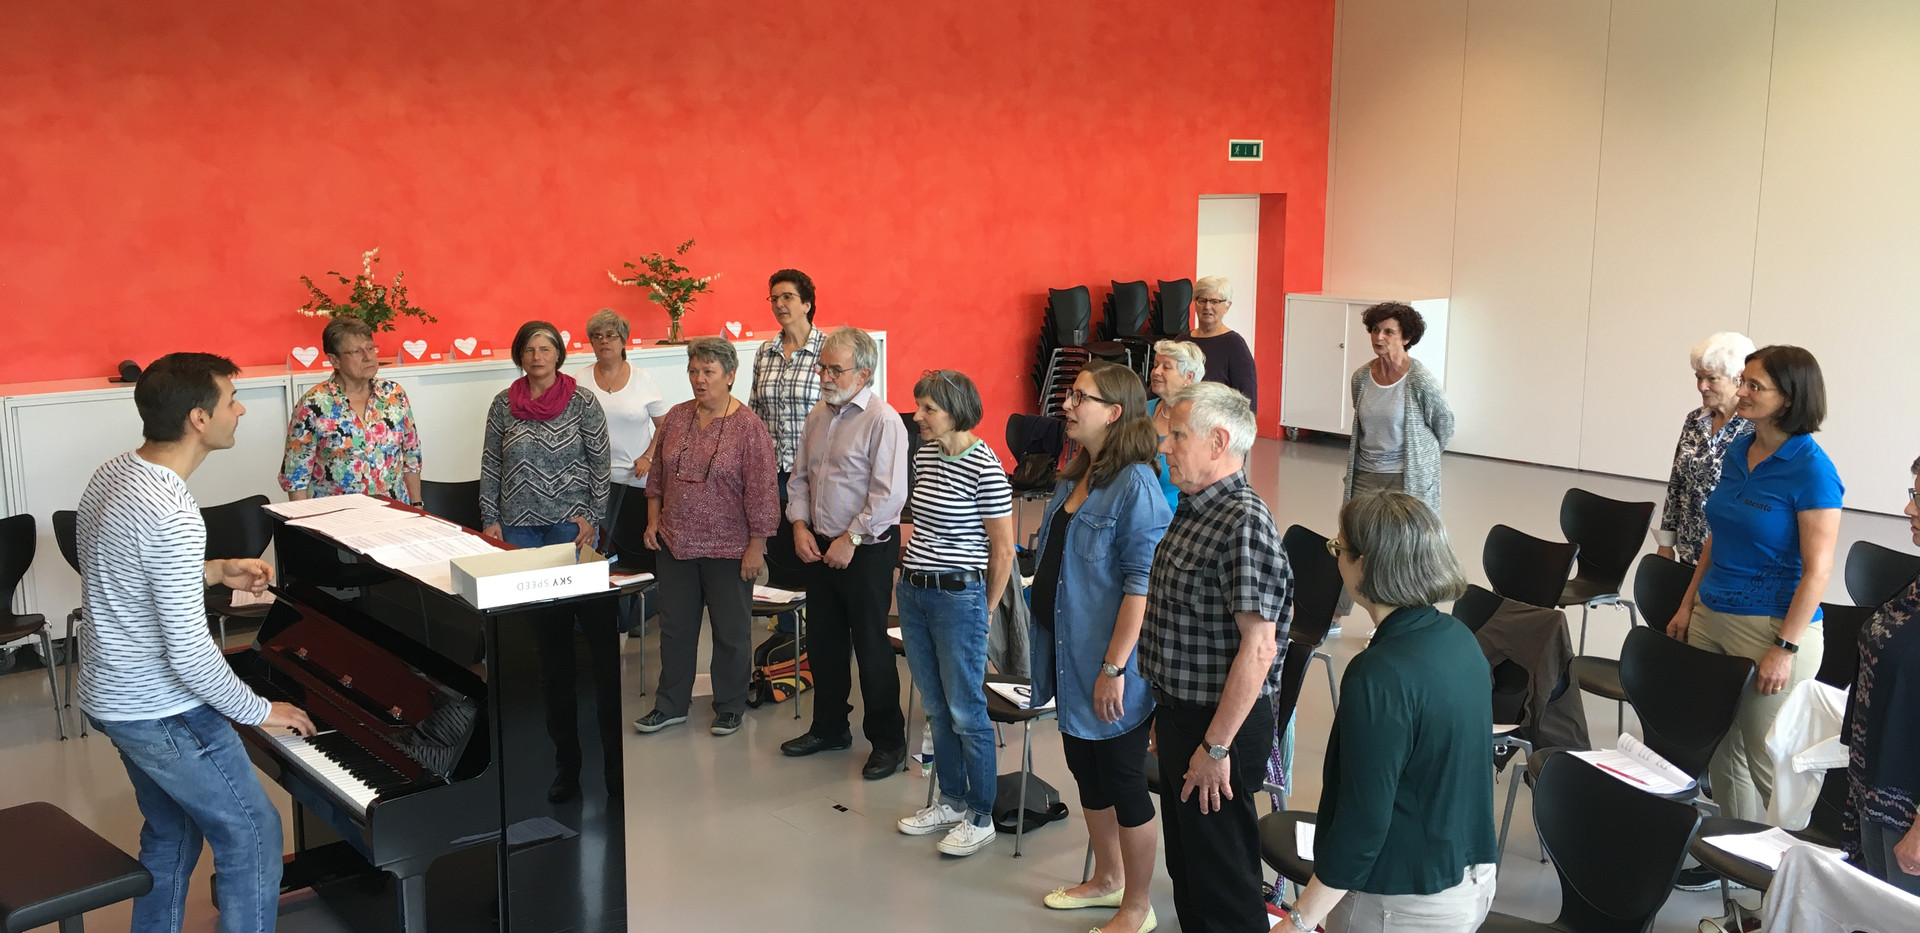 20180505_Singsamstag in Appenzell  (1).j